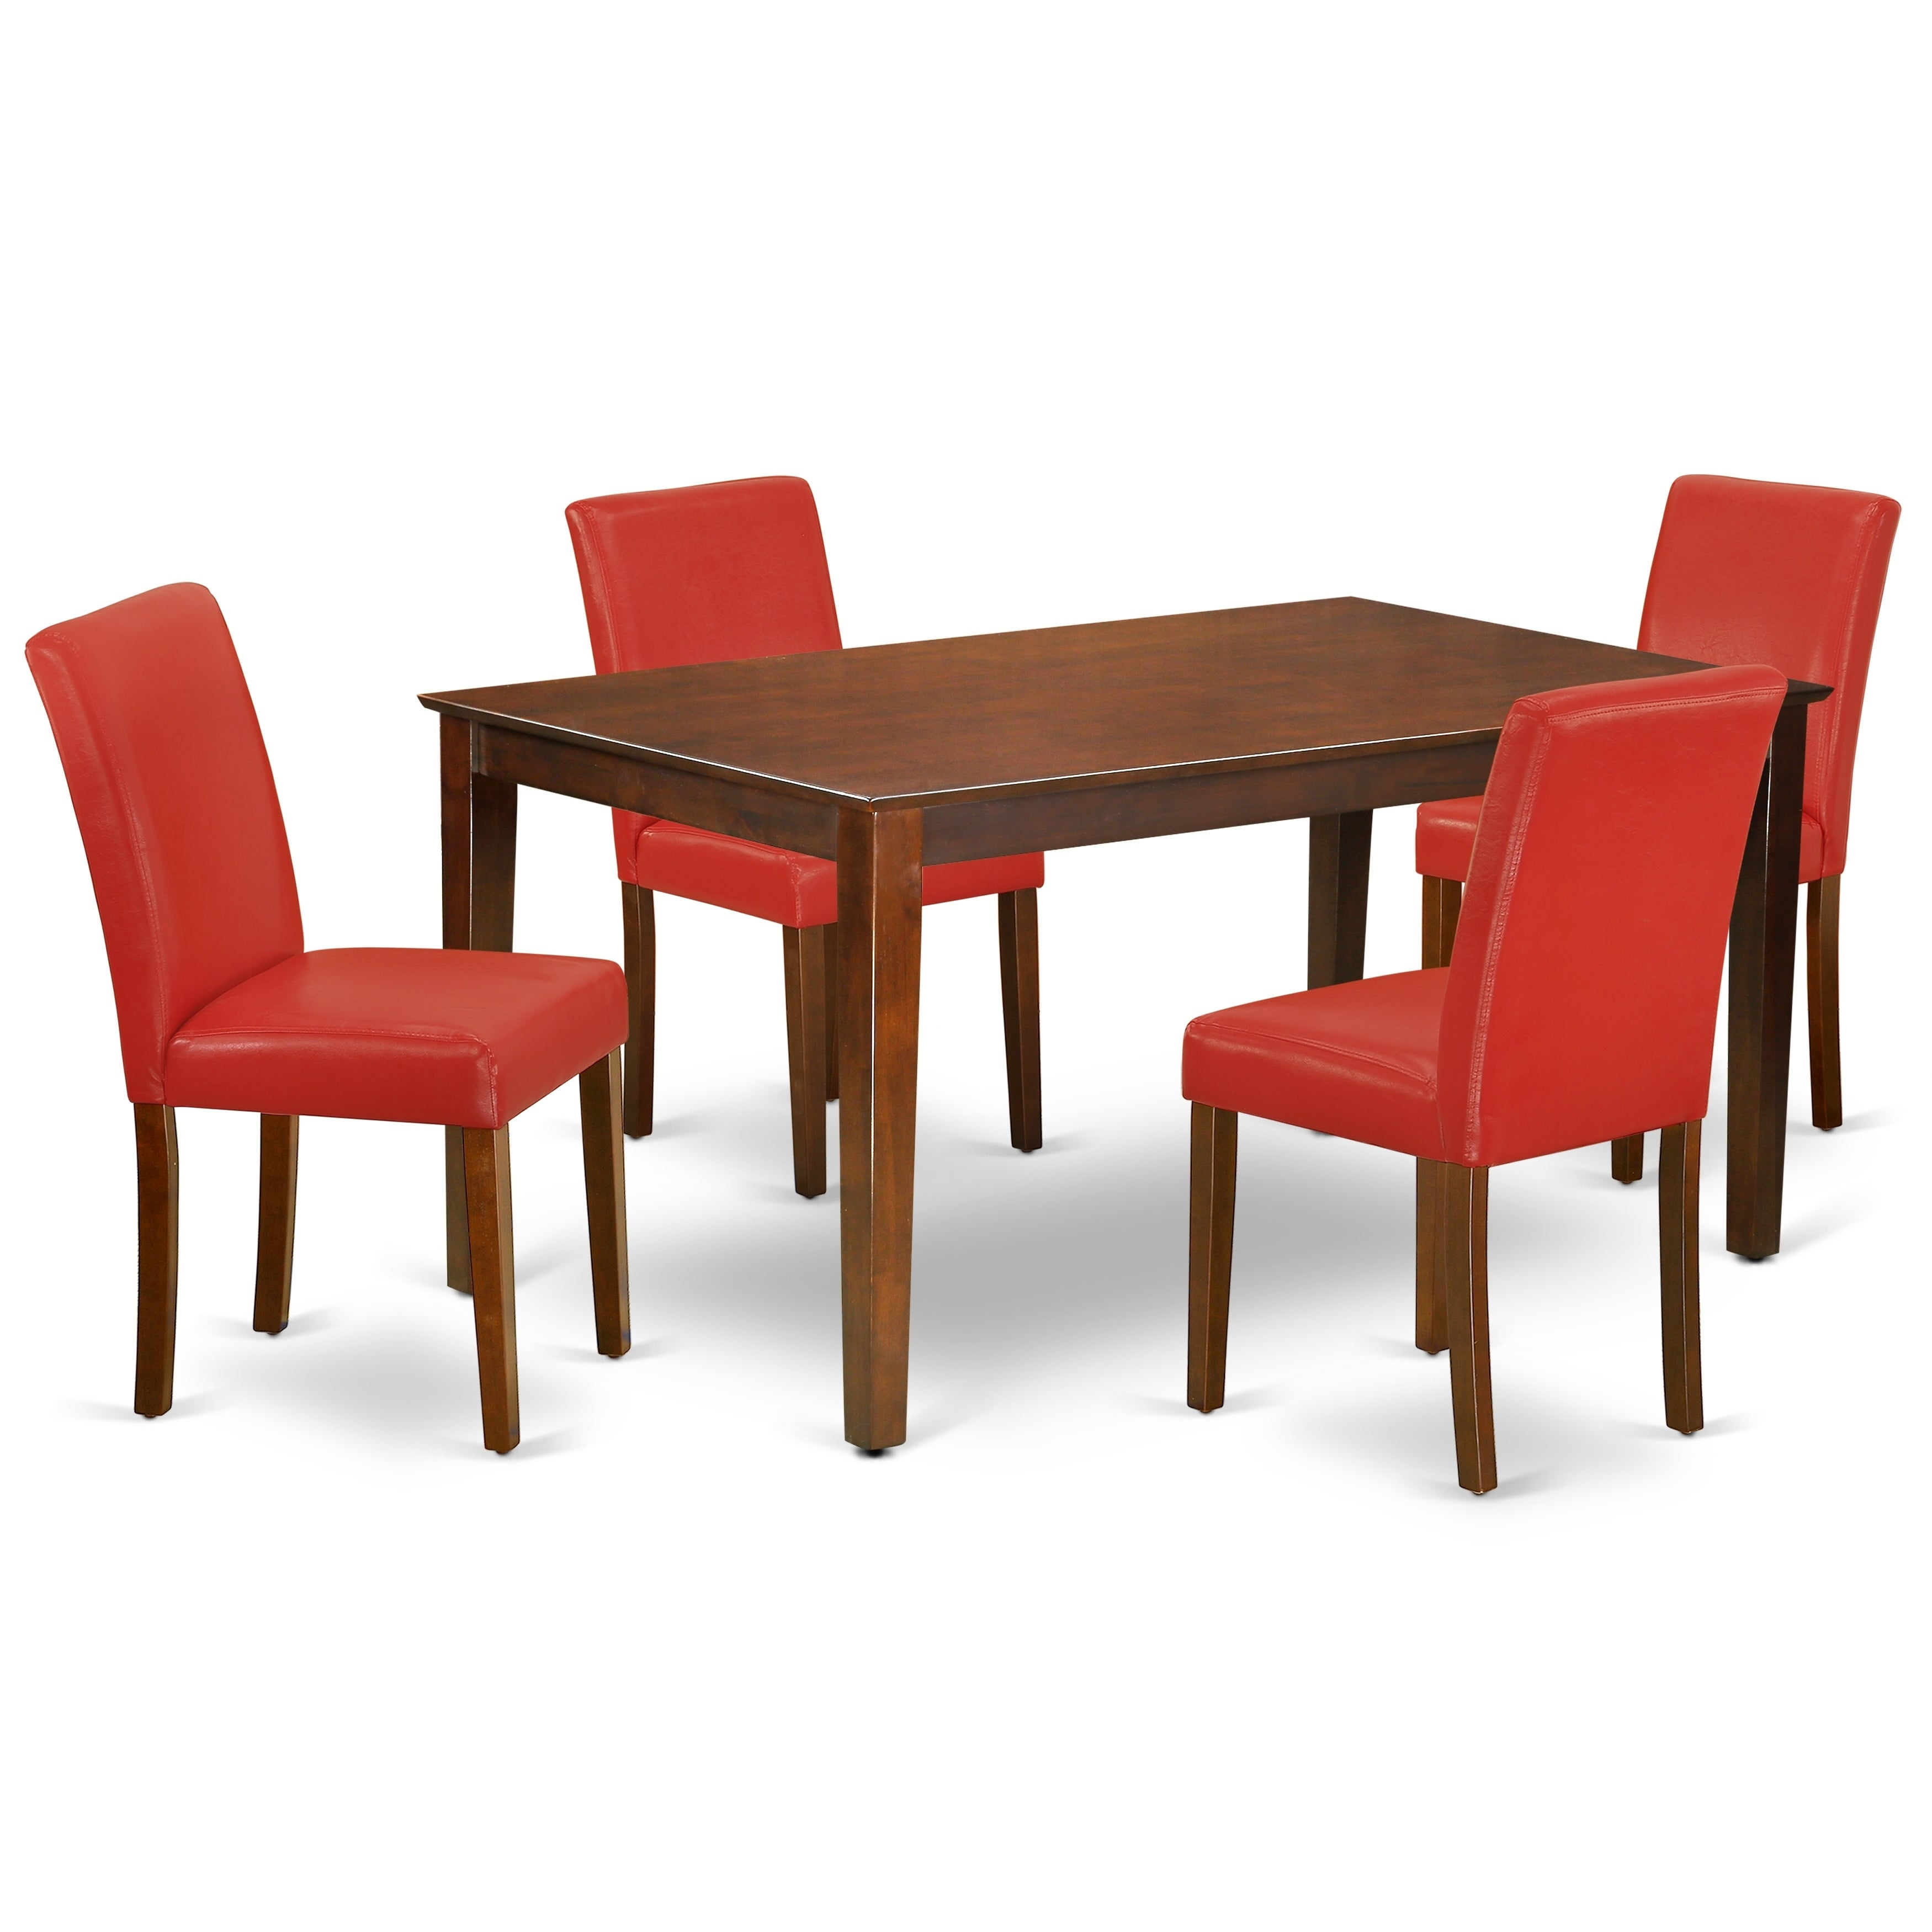 Parson Chairs In Firebrick Red Pu